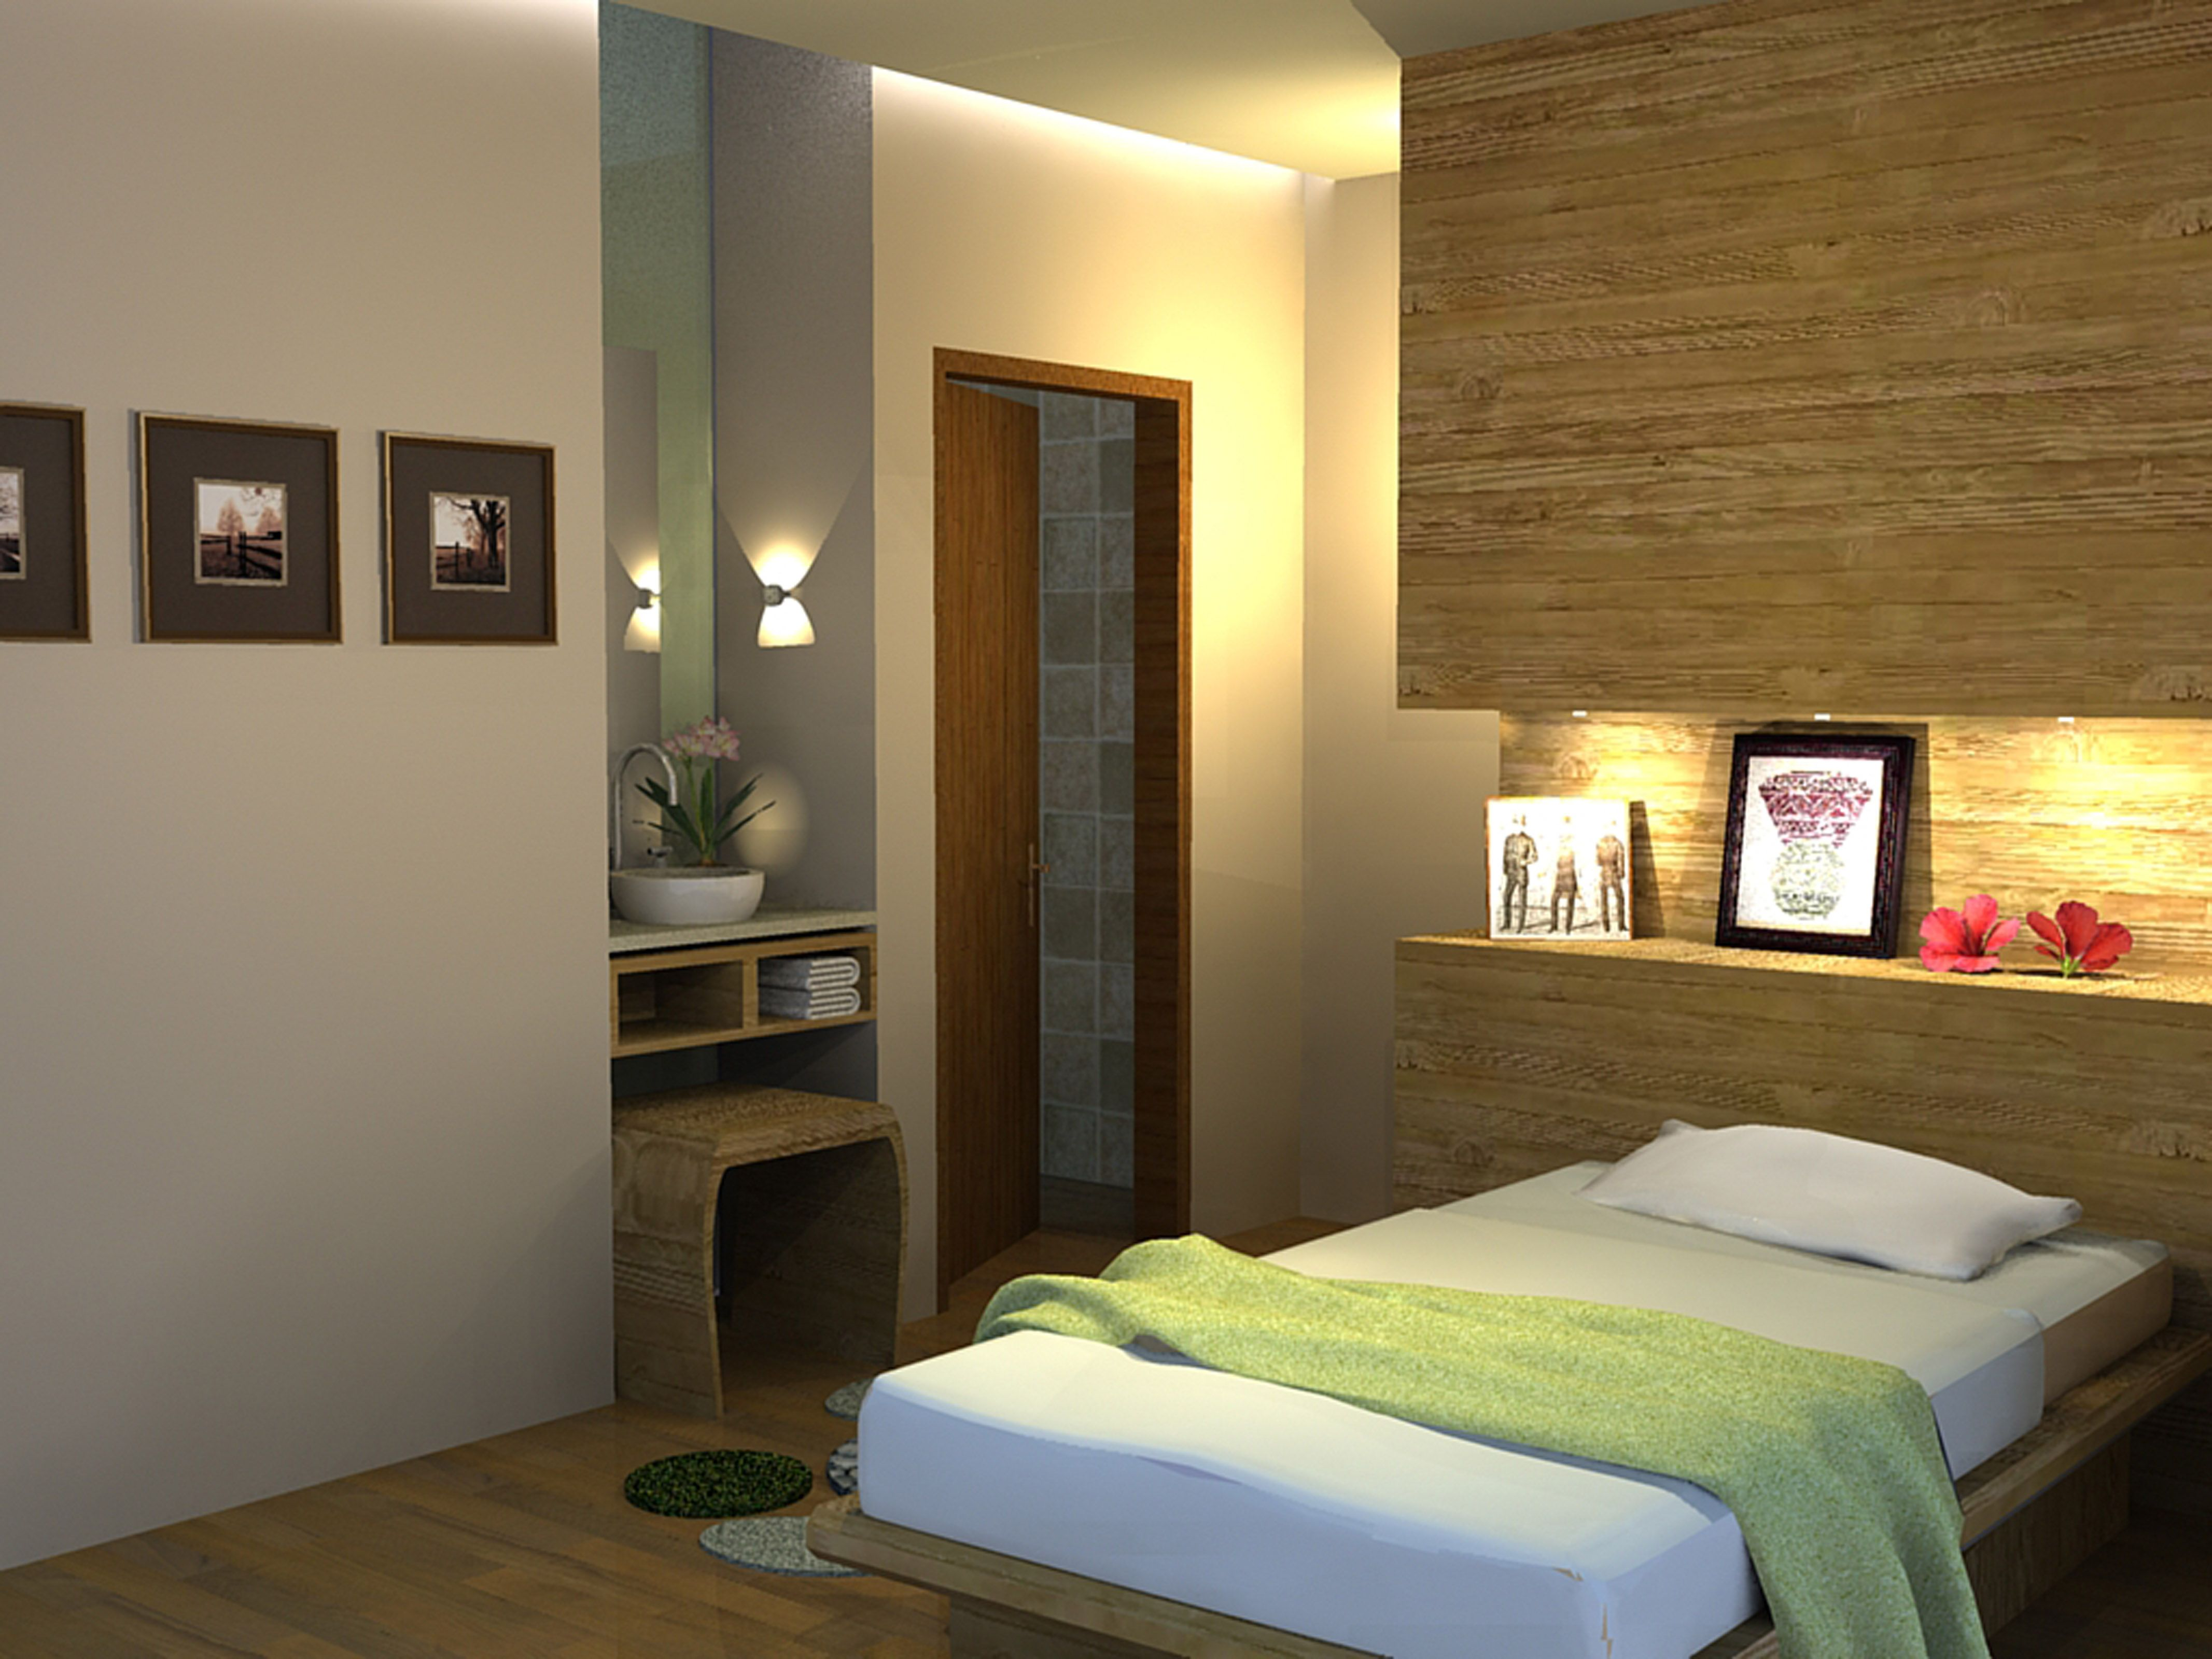 Old Lady Room Design Interior Render Ginamhint